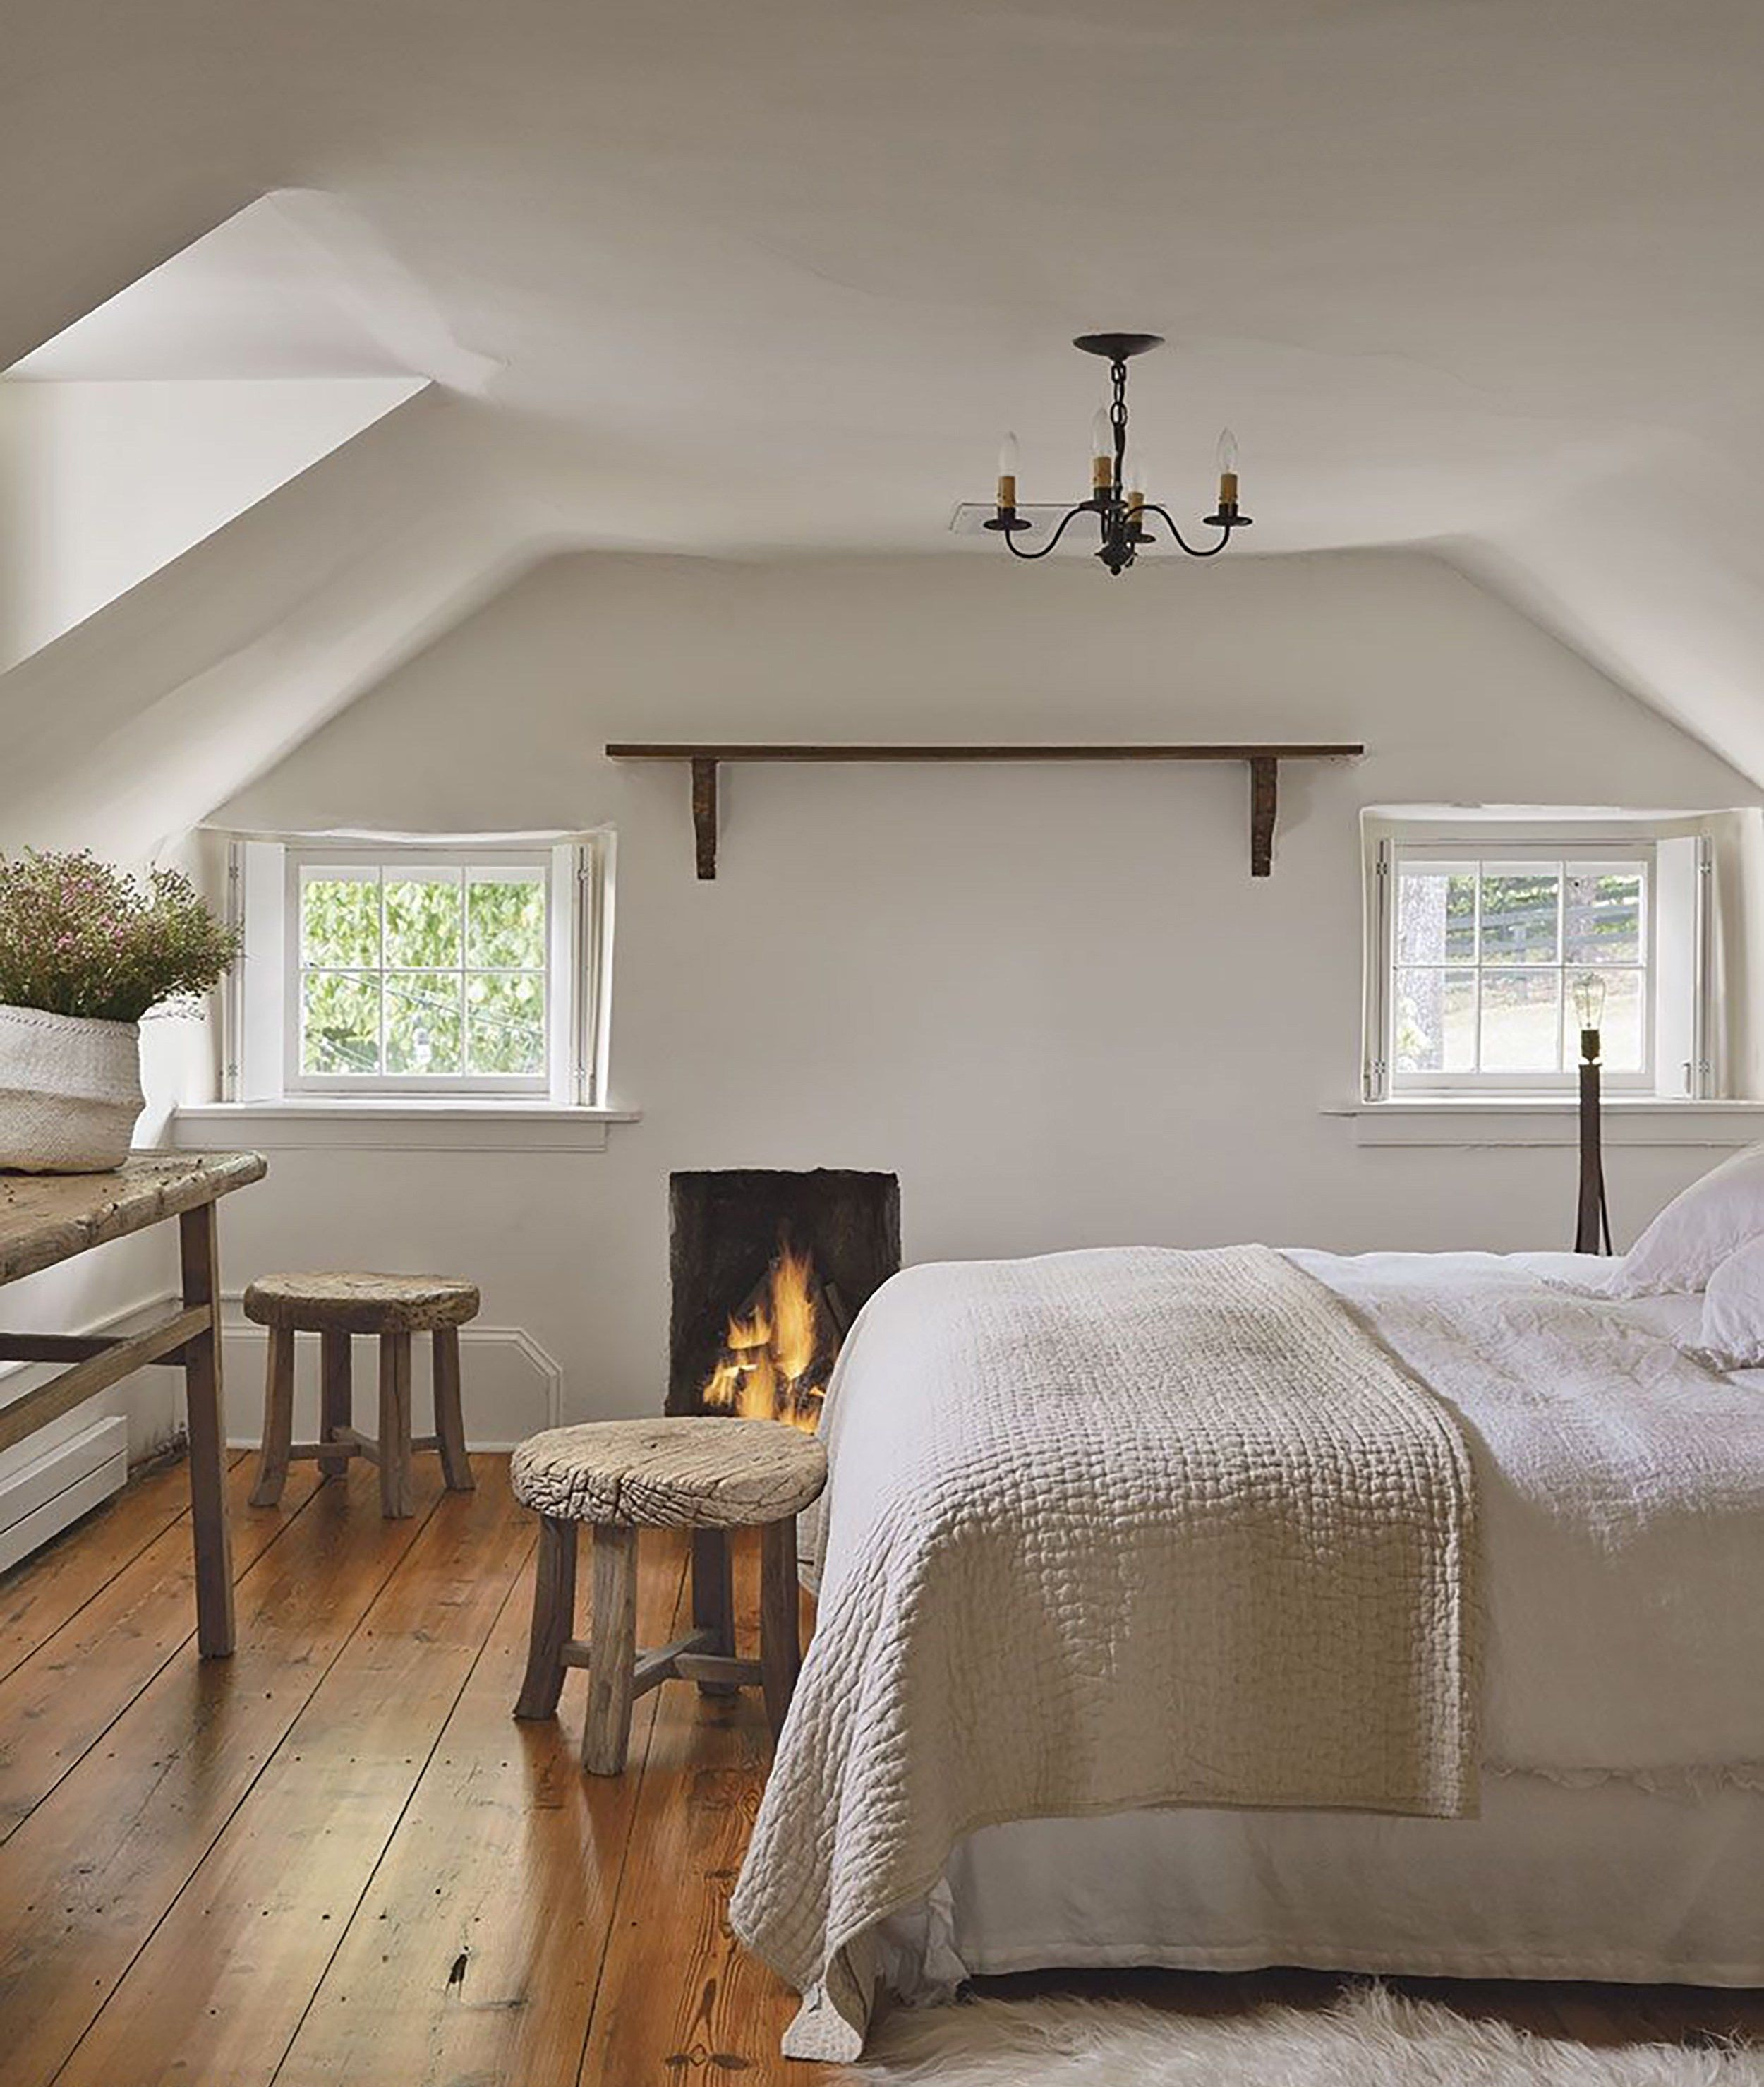 Minimal Simple Farmhouse Bedroom With Fireplace